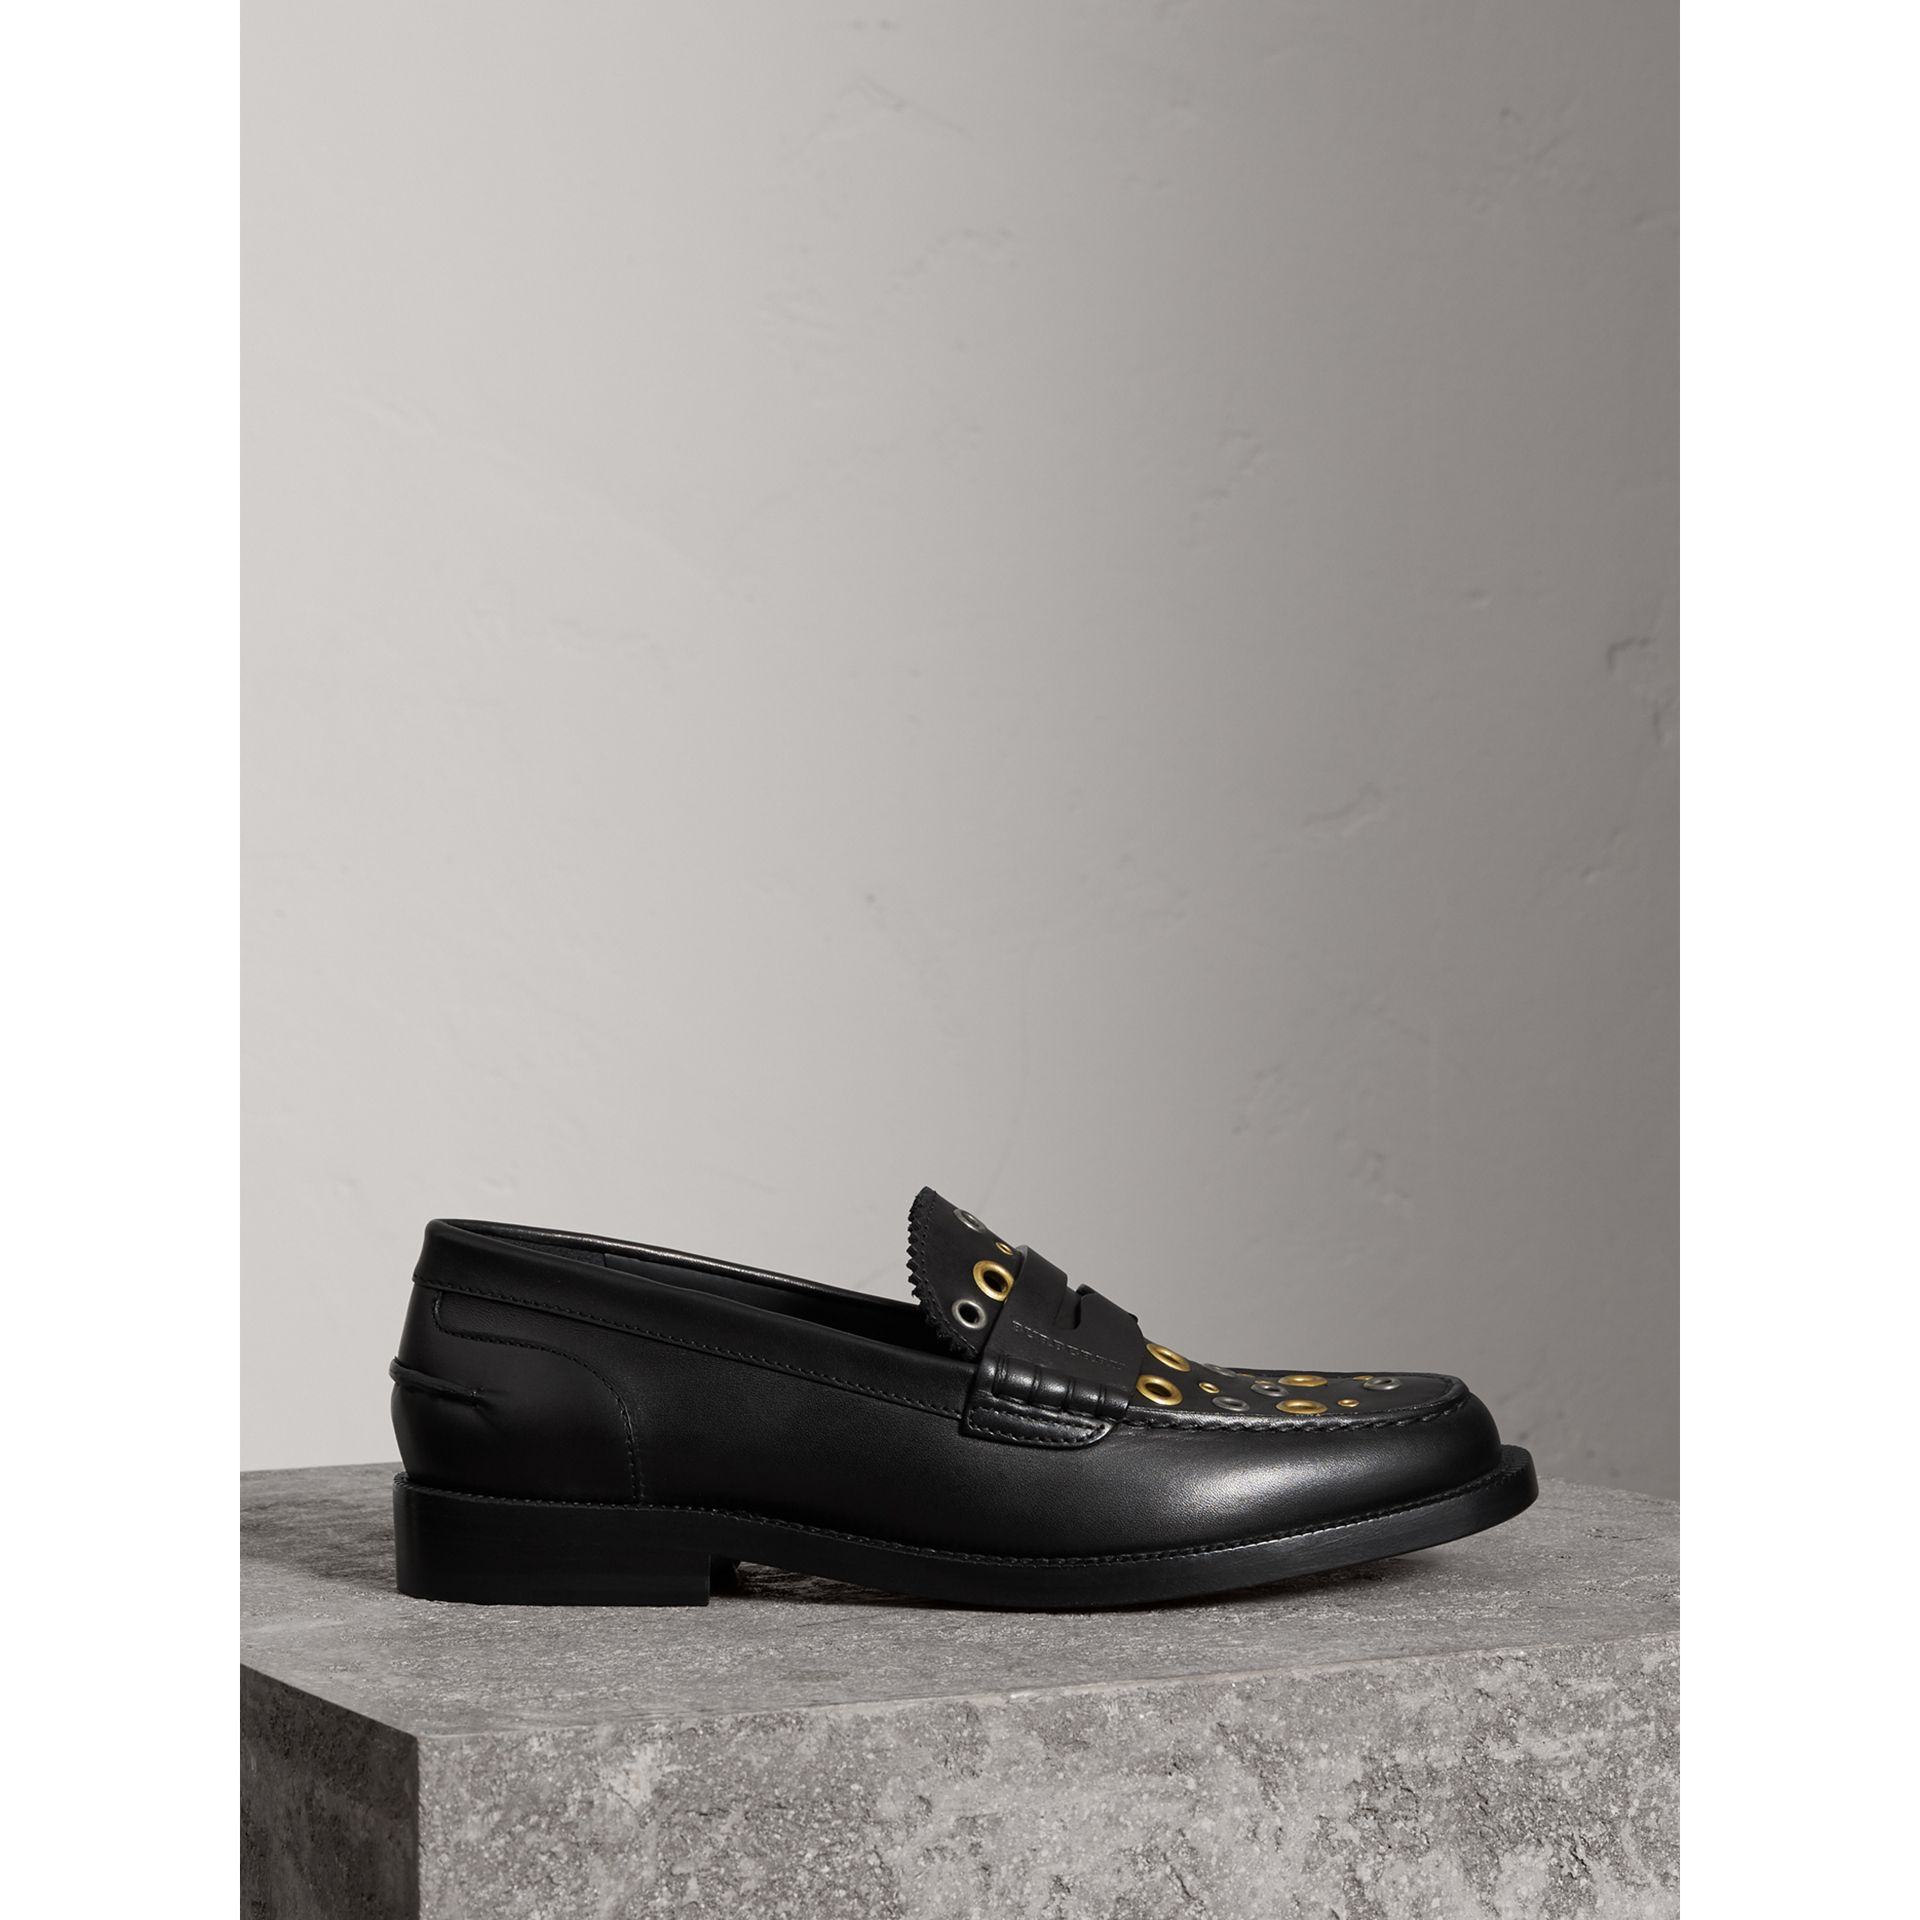 Eyelet Detail Leather Penny Loafers in Black - Women | Burberry Australia - gallery image 4